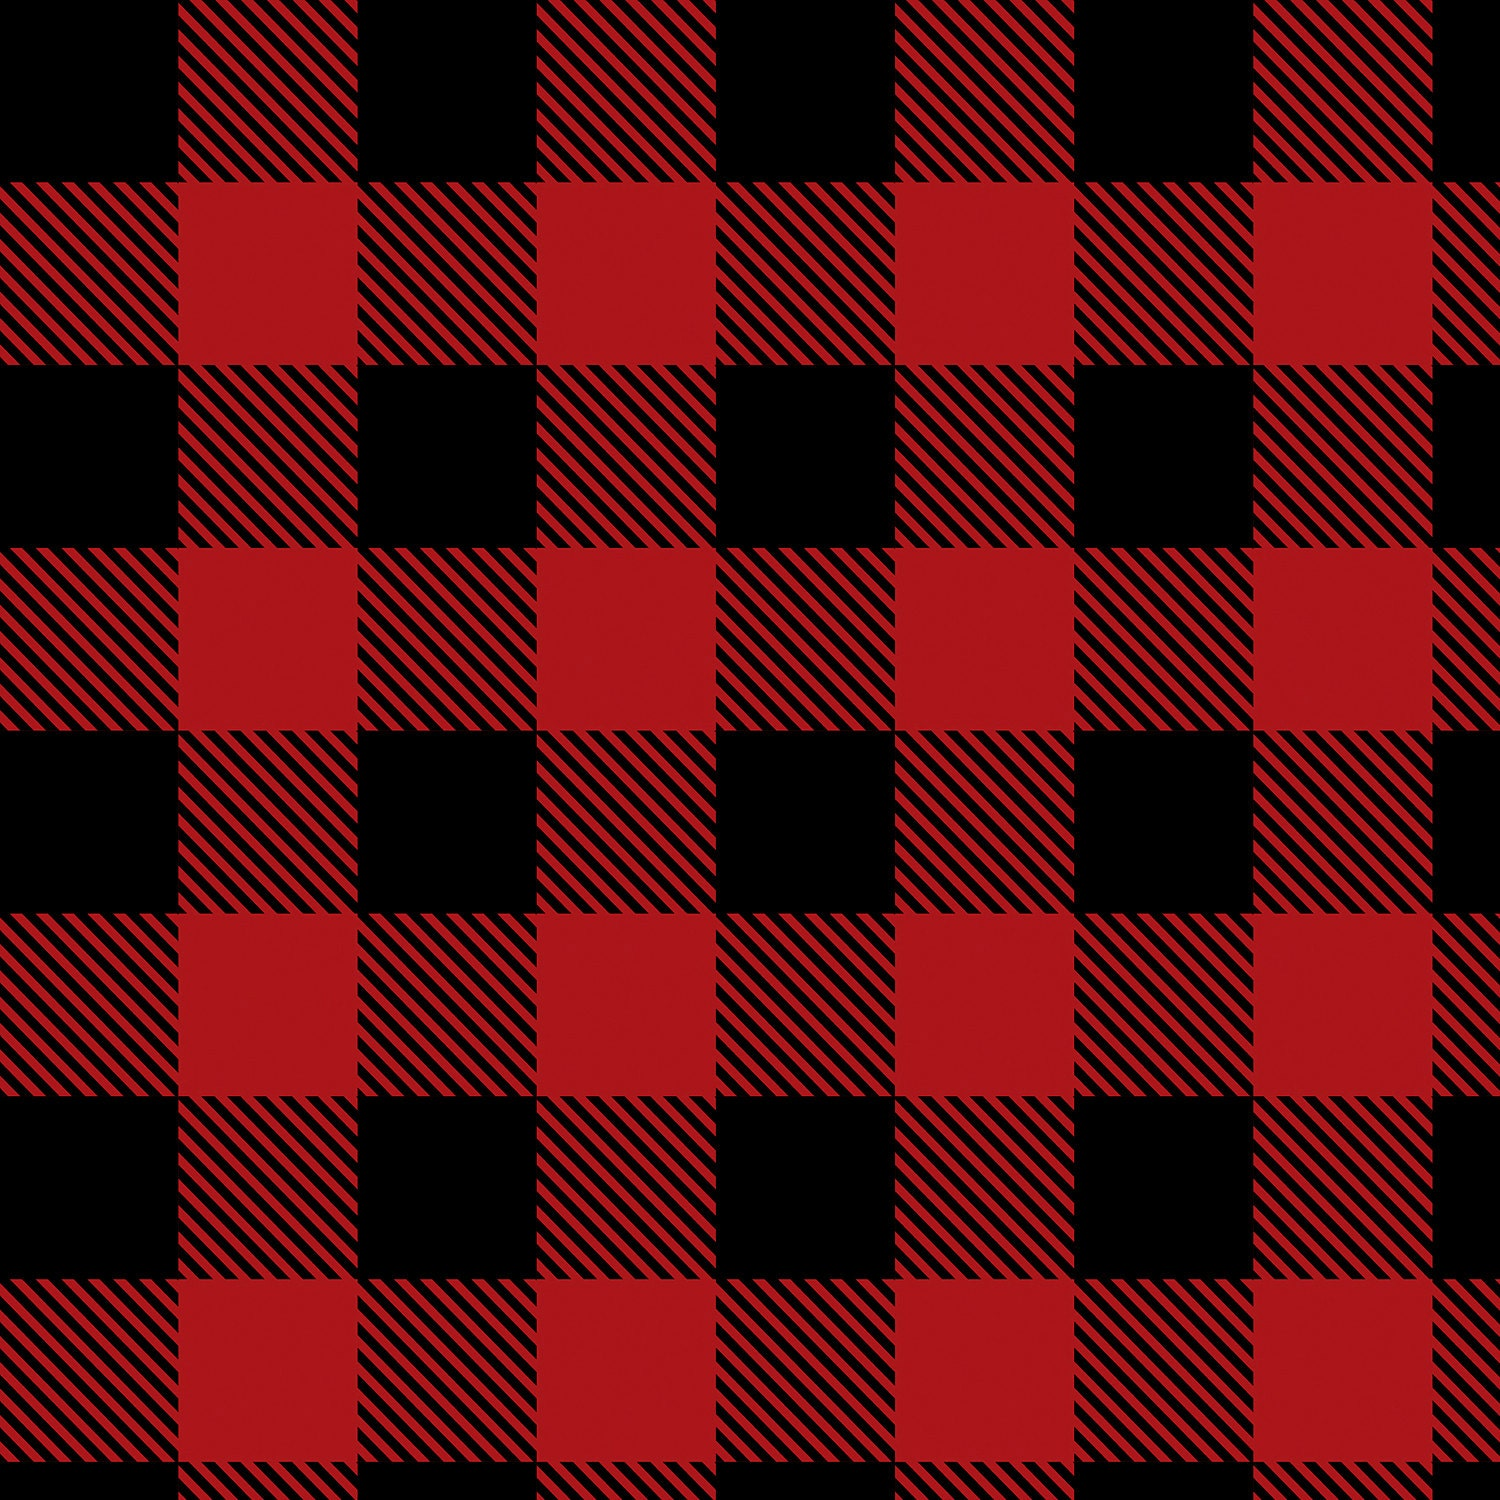 Red Buffalo Plaid Flannel From Camelot Fabrics Cotton